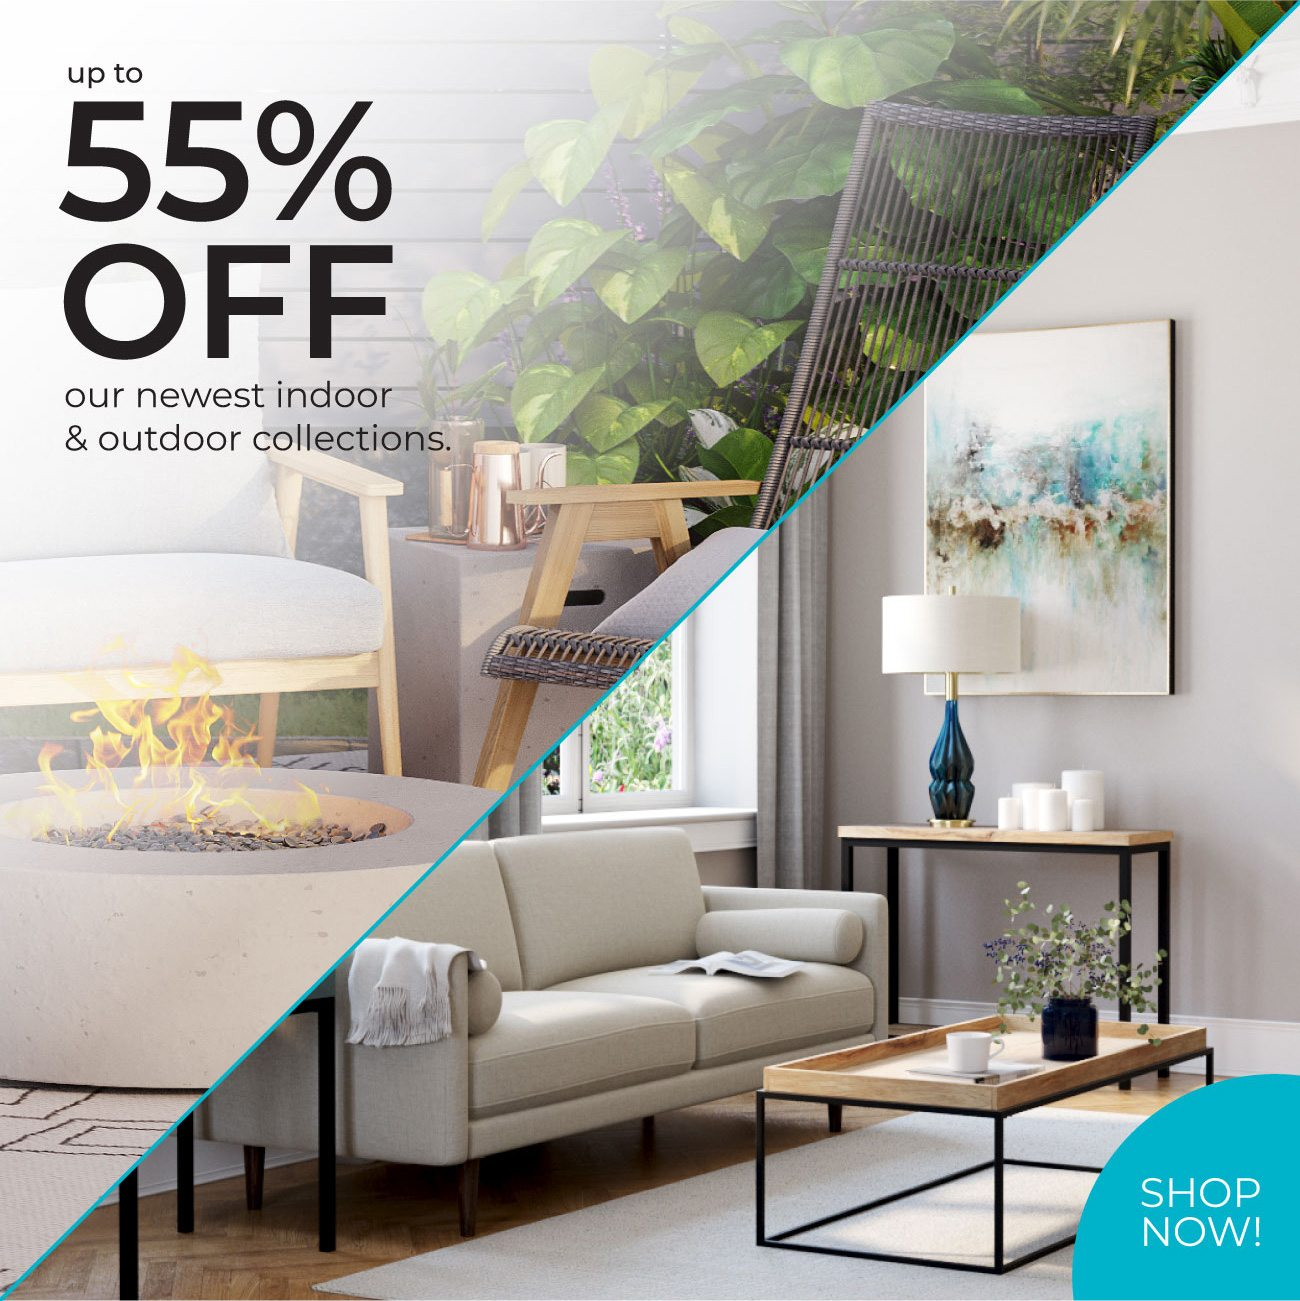 Up to 55% Off Our Newest Indoor & Outdoor Collections. | Shop Now!